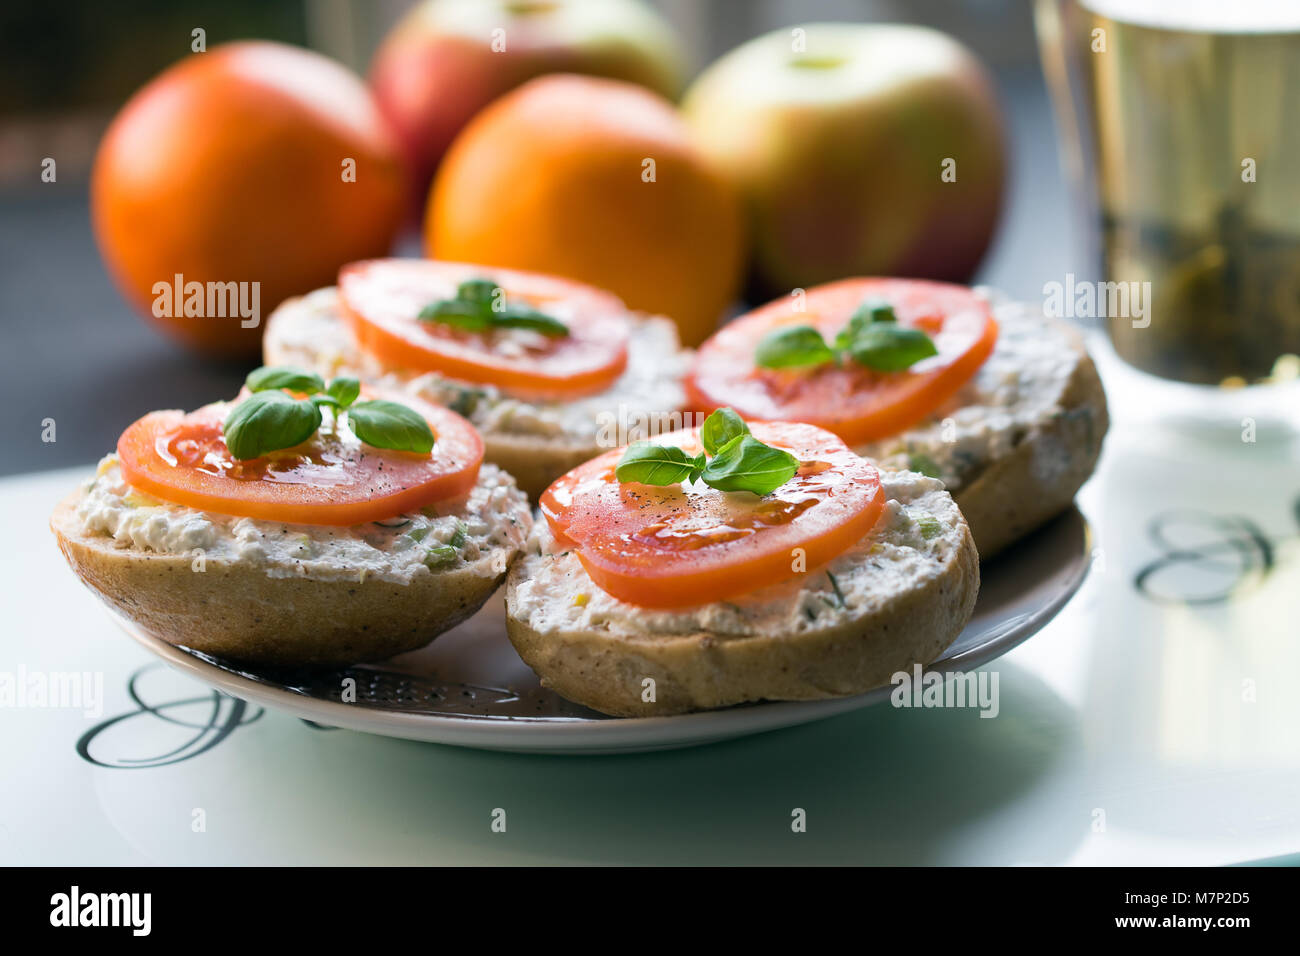 Sandwich with tomato on top and white chese at white plate in the glare of the morning sun - Stock Image